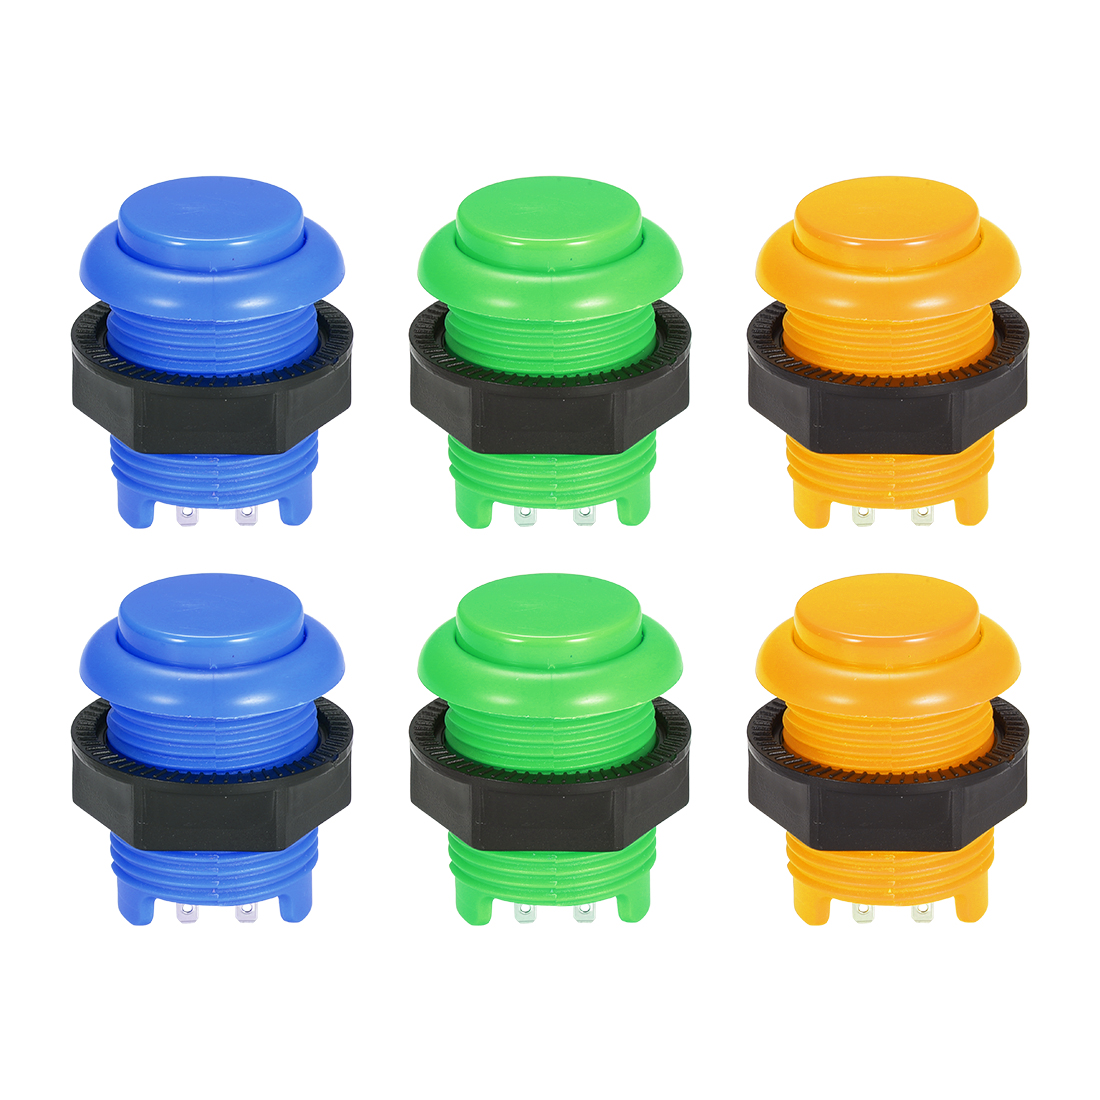 26.6mm Mounting Hole Momentary Game Push Button Switch 3 Colors 6pcs